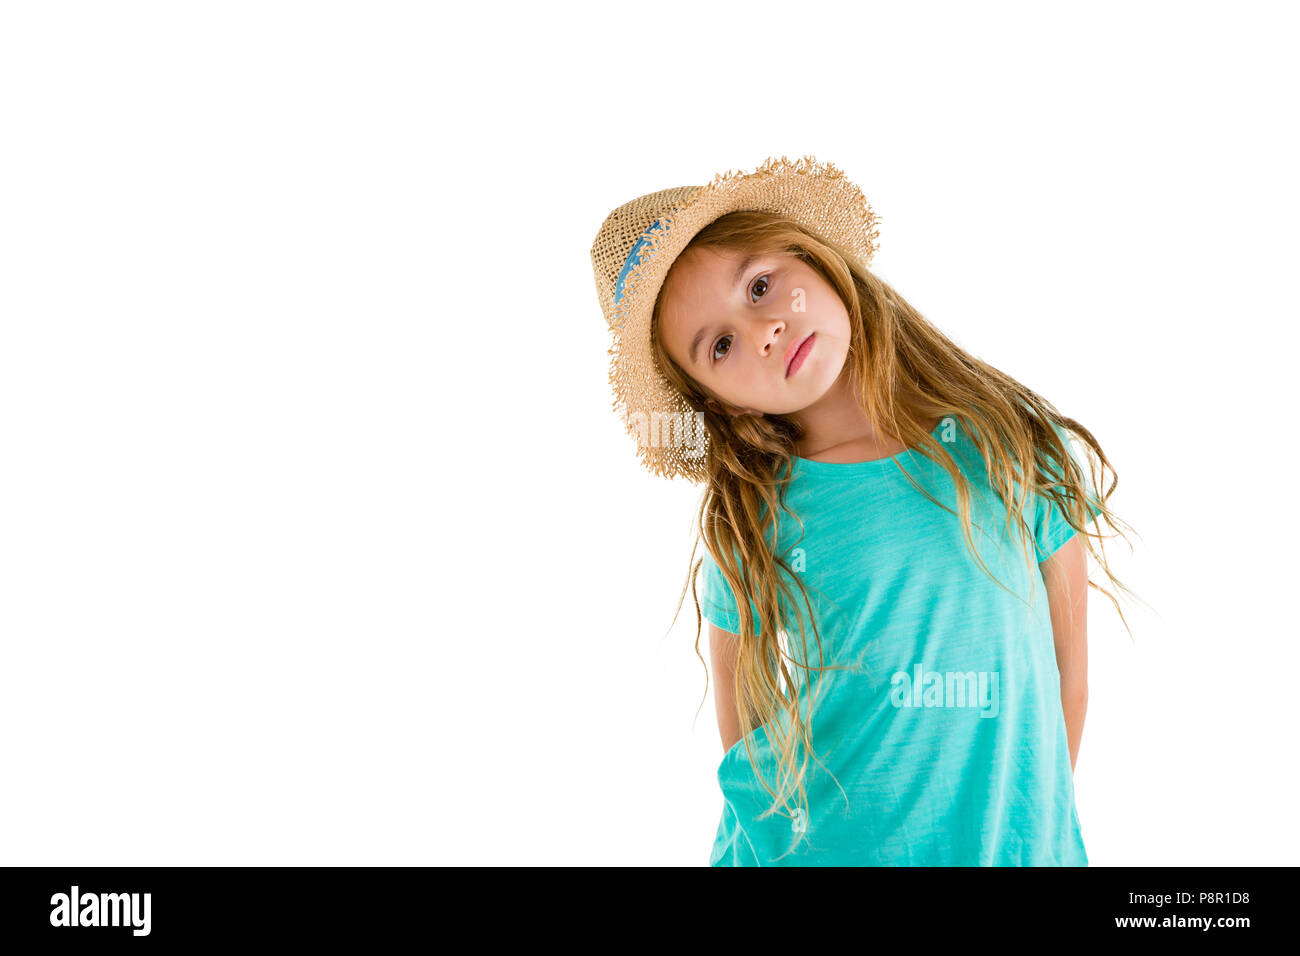 Cute little blond girl with long tousled hair wearing a straw hat tilting her head to the side as she stares at the camera with copyspace on white - Stock Image